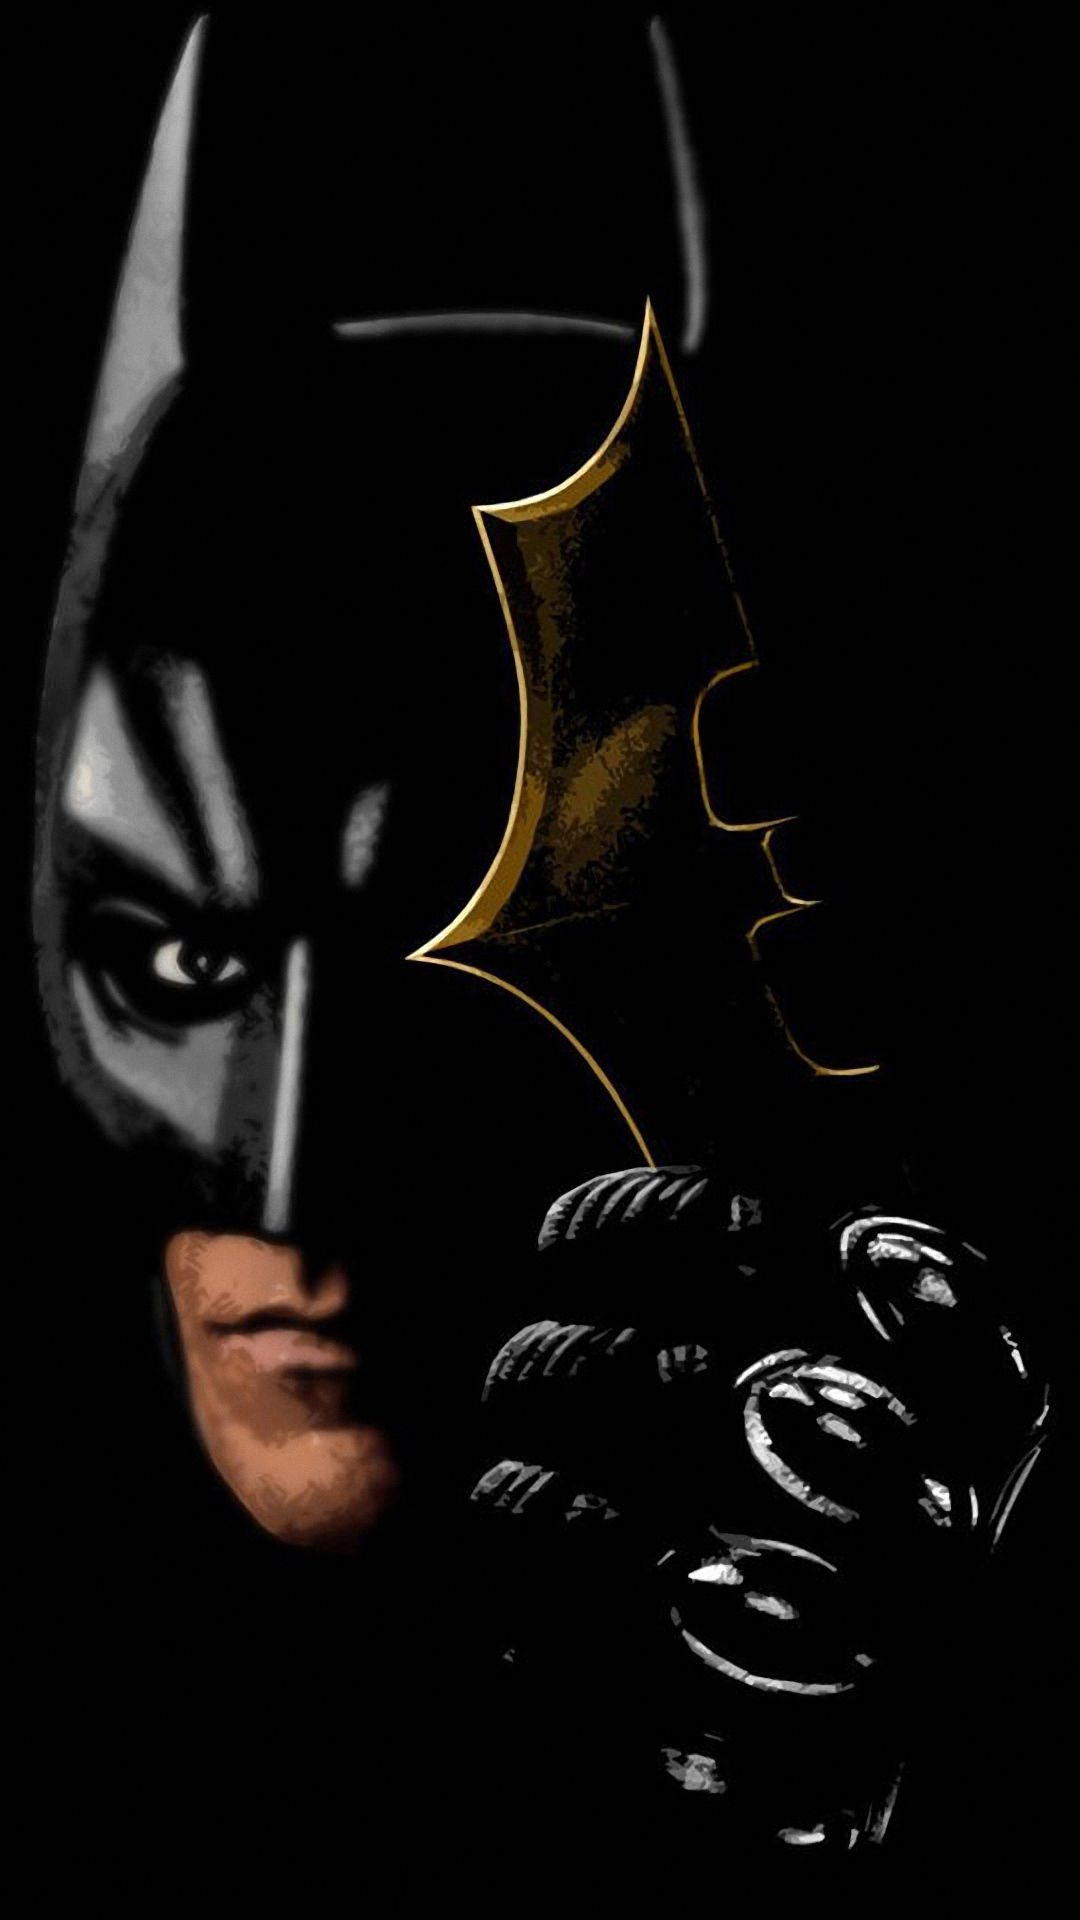 Awesome Batman Hd Wallpapers For Iphone wallpapers to download for free greenvirals